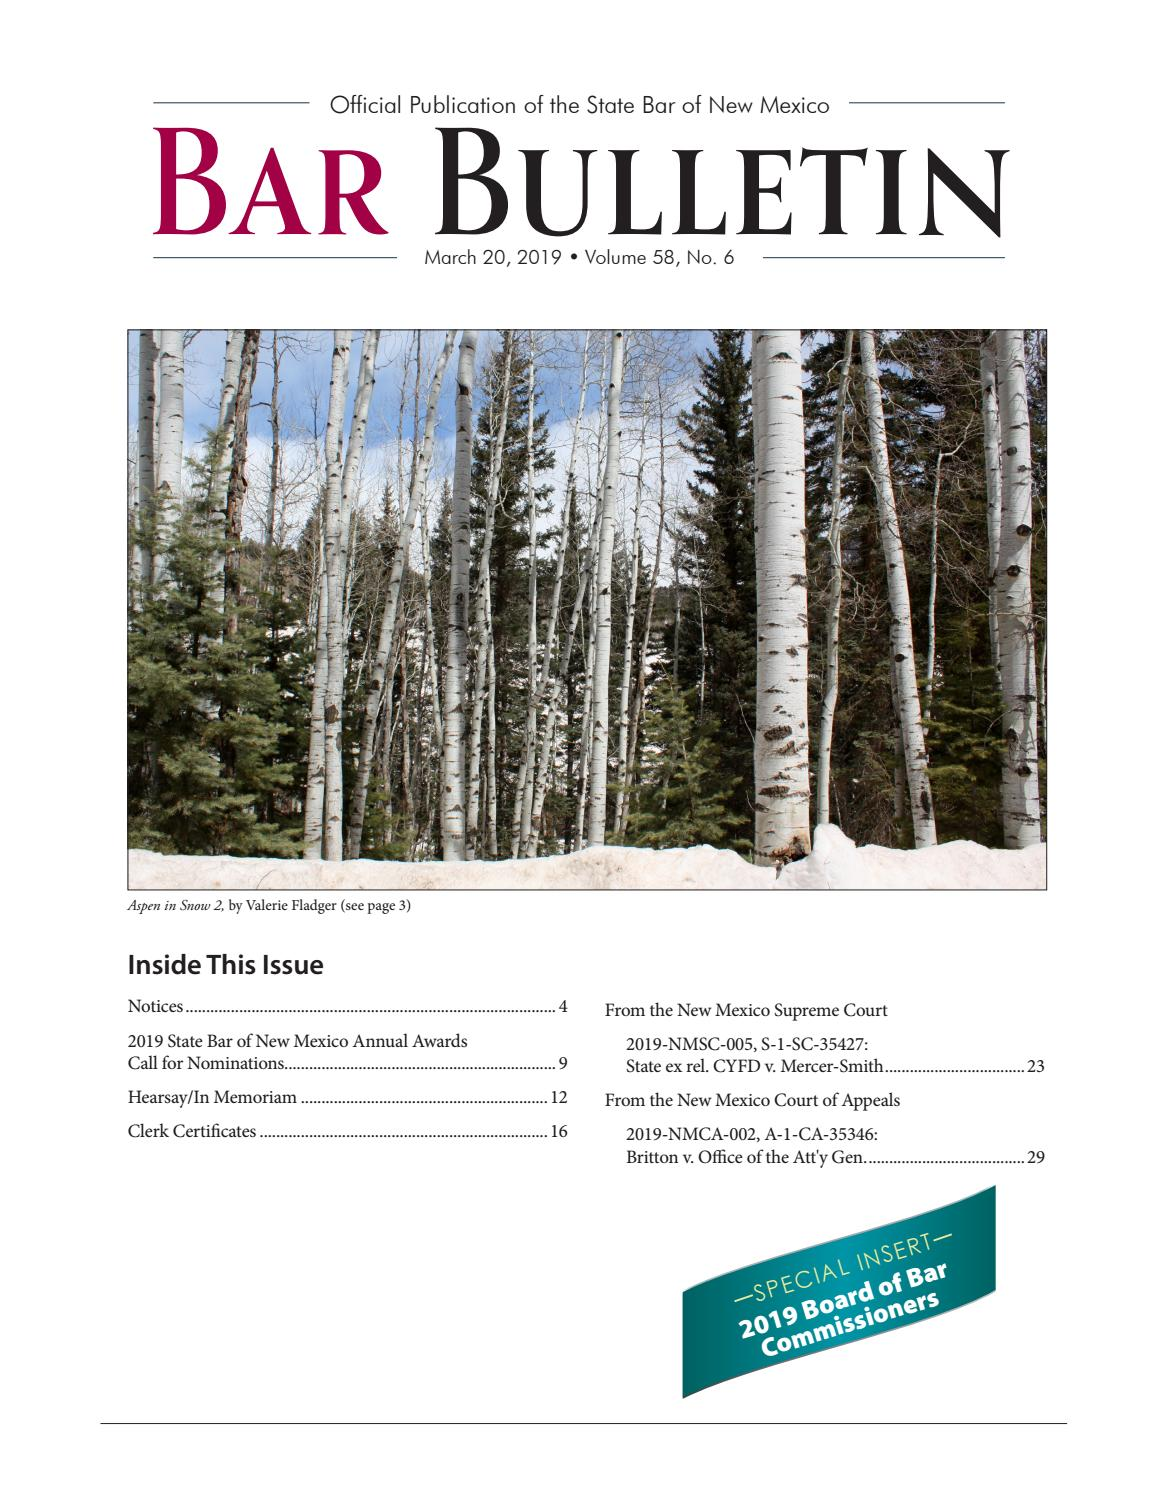 BB-2019-03-20 by State Bar of New Mexico - issuu